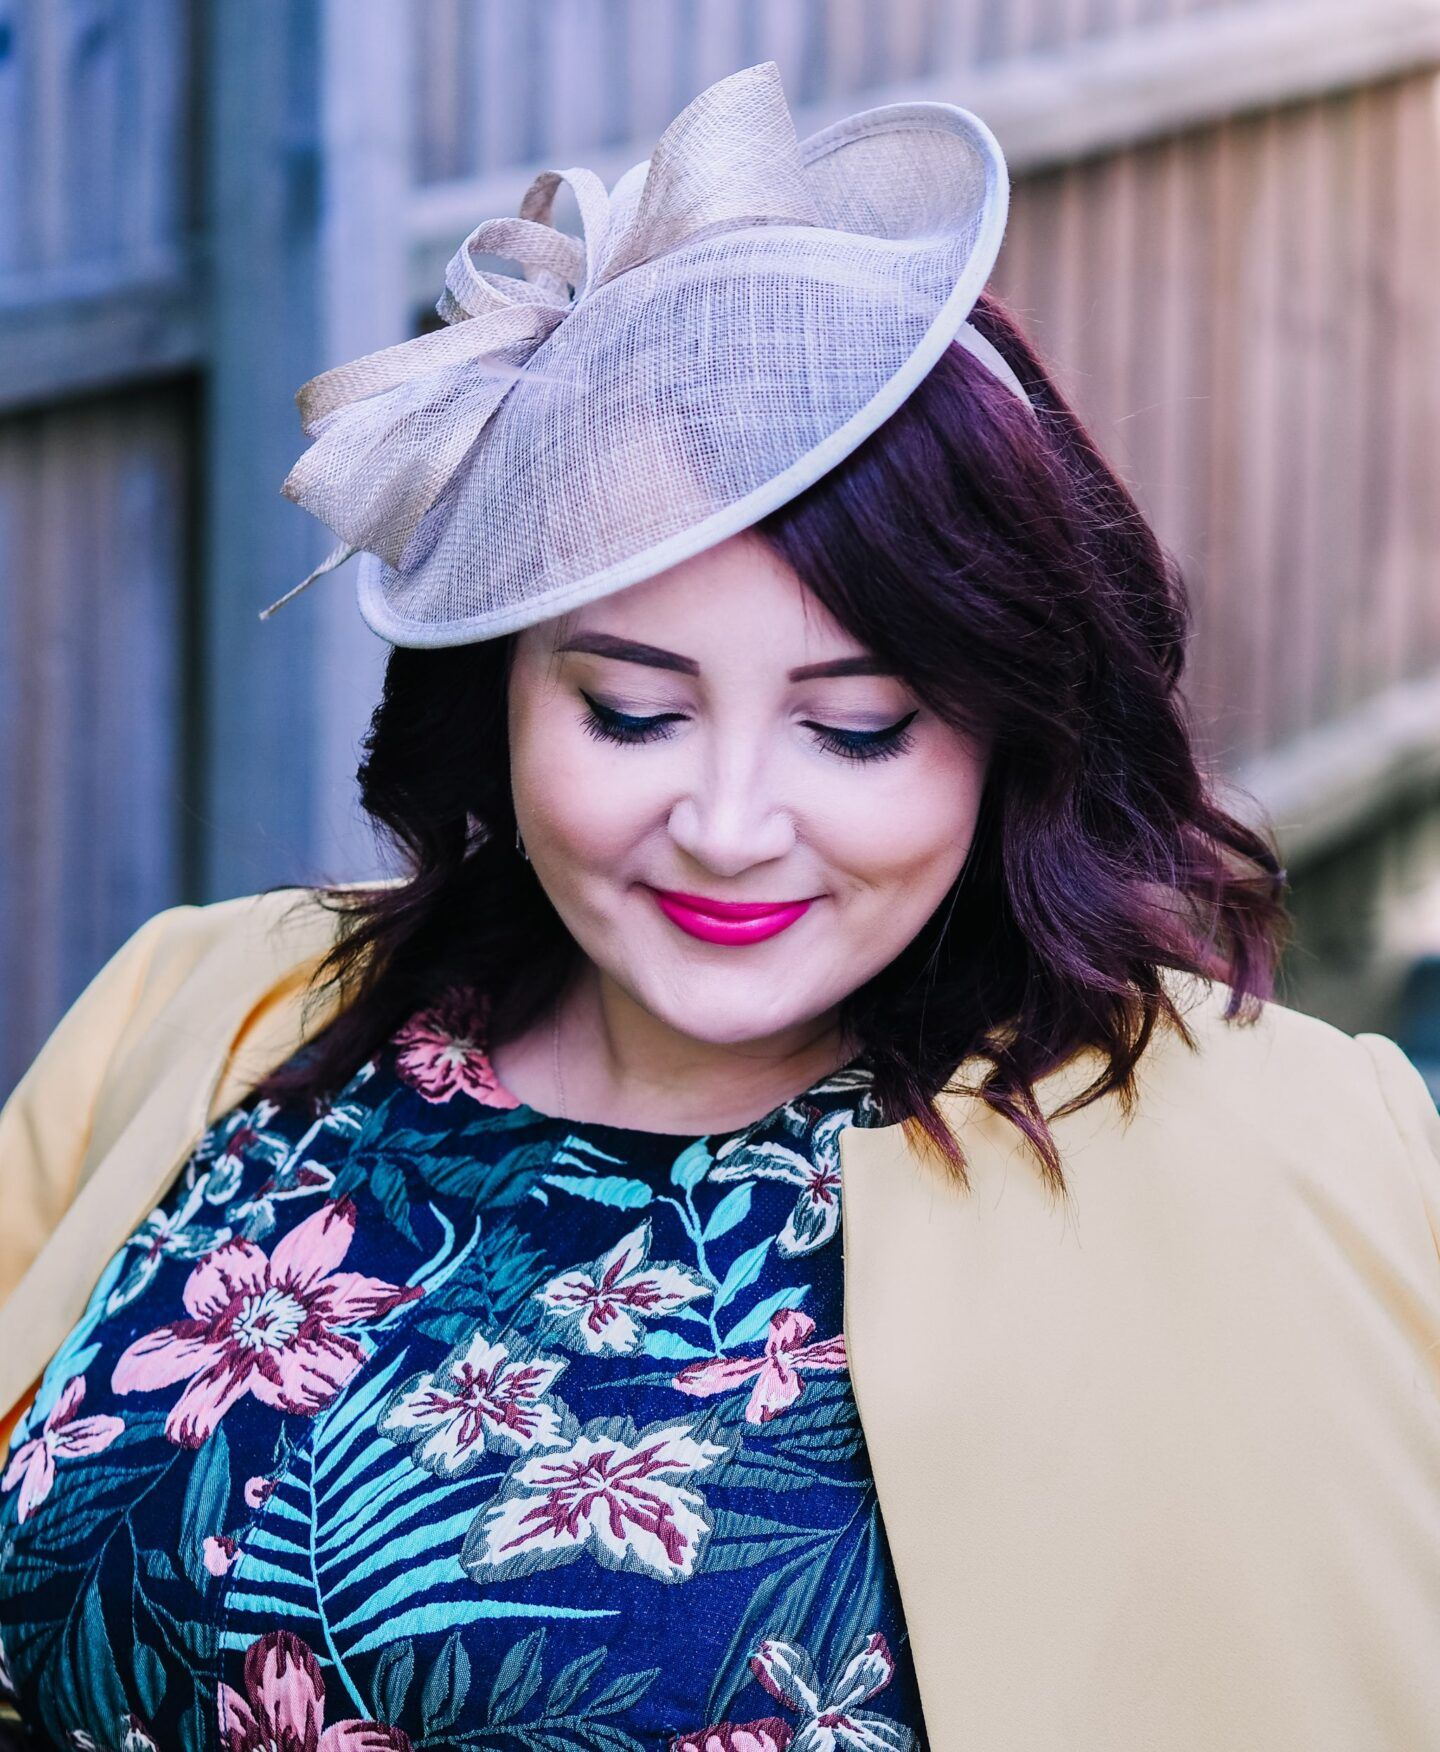 What To Wear To An Autumn Wedding (If You're 30+ And Curvy)